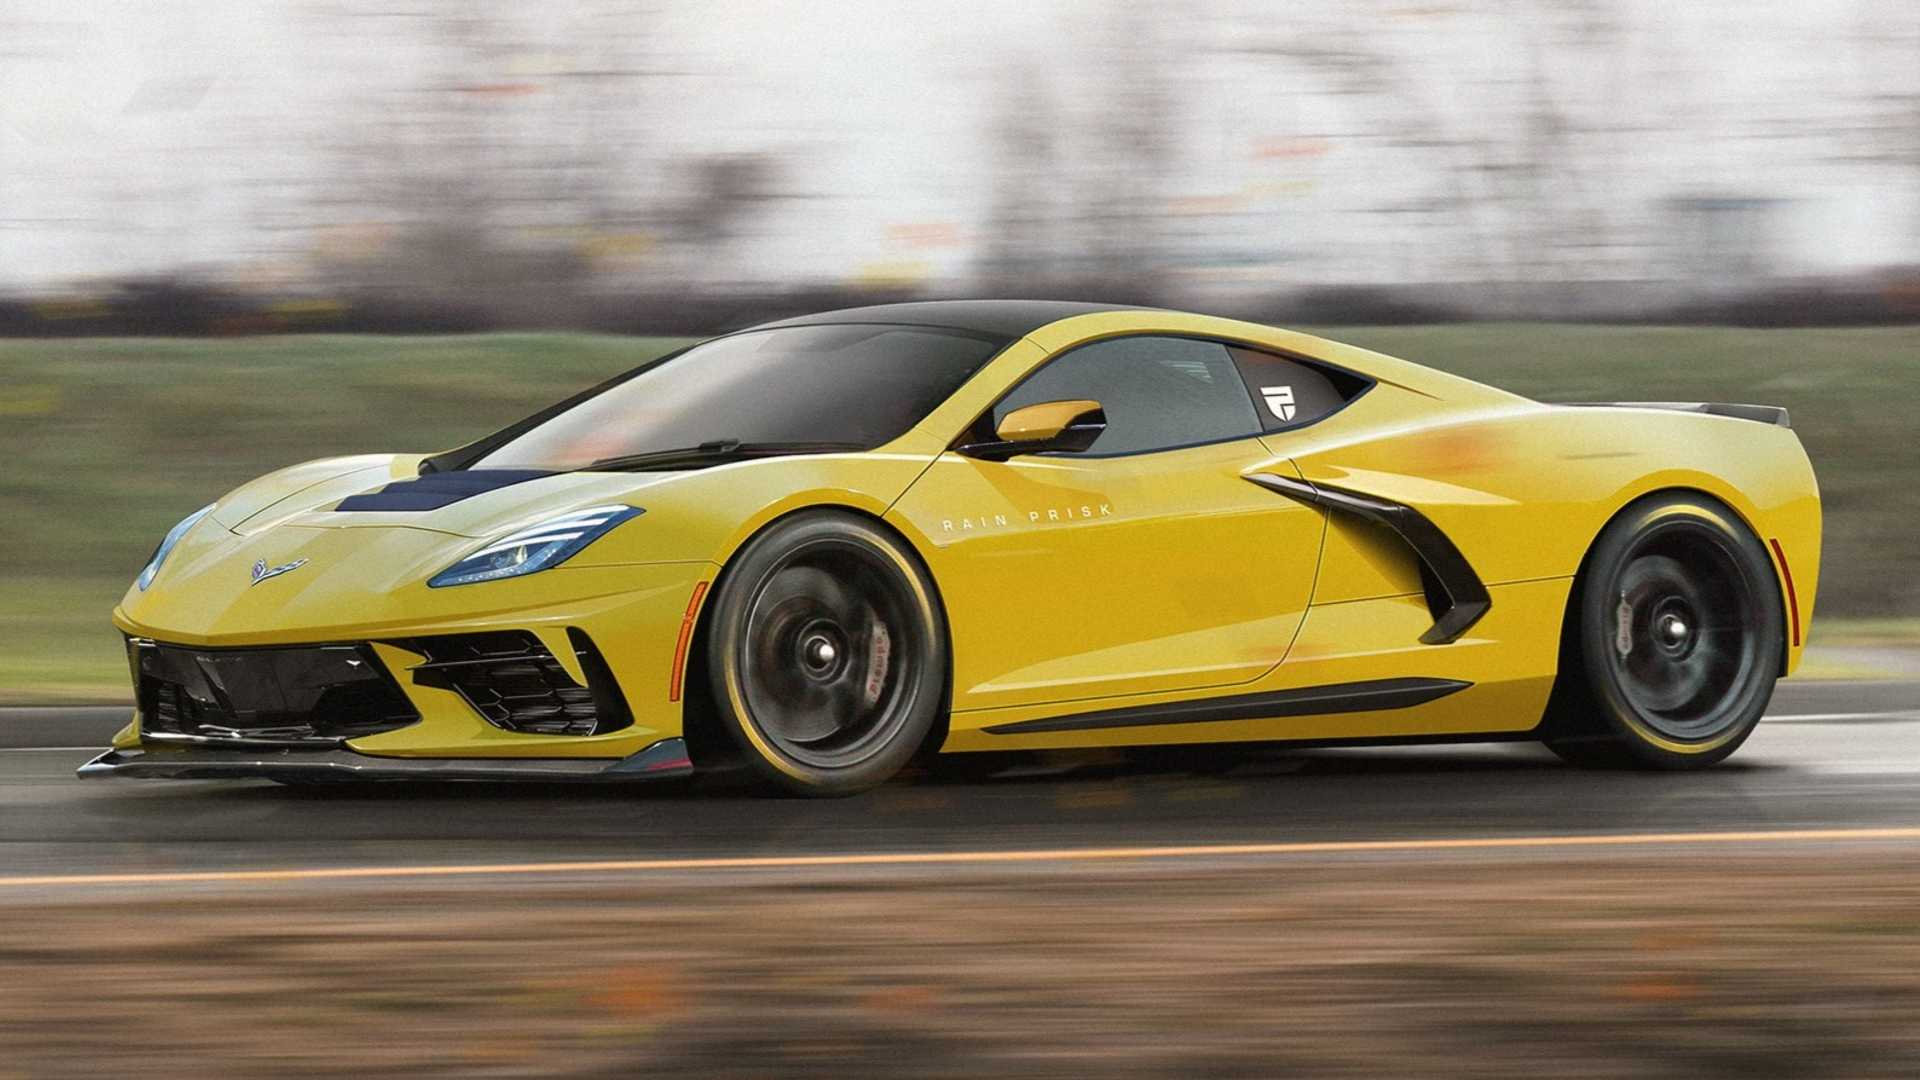 What If The 2020 Corvette C8 Had More C7 Influence?